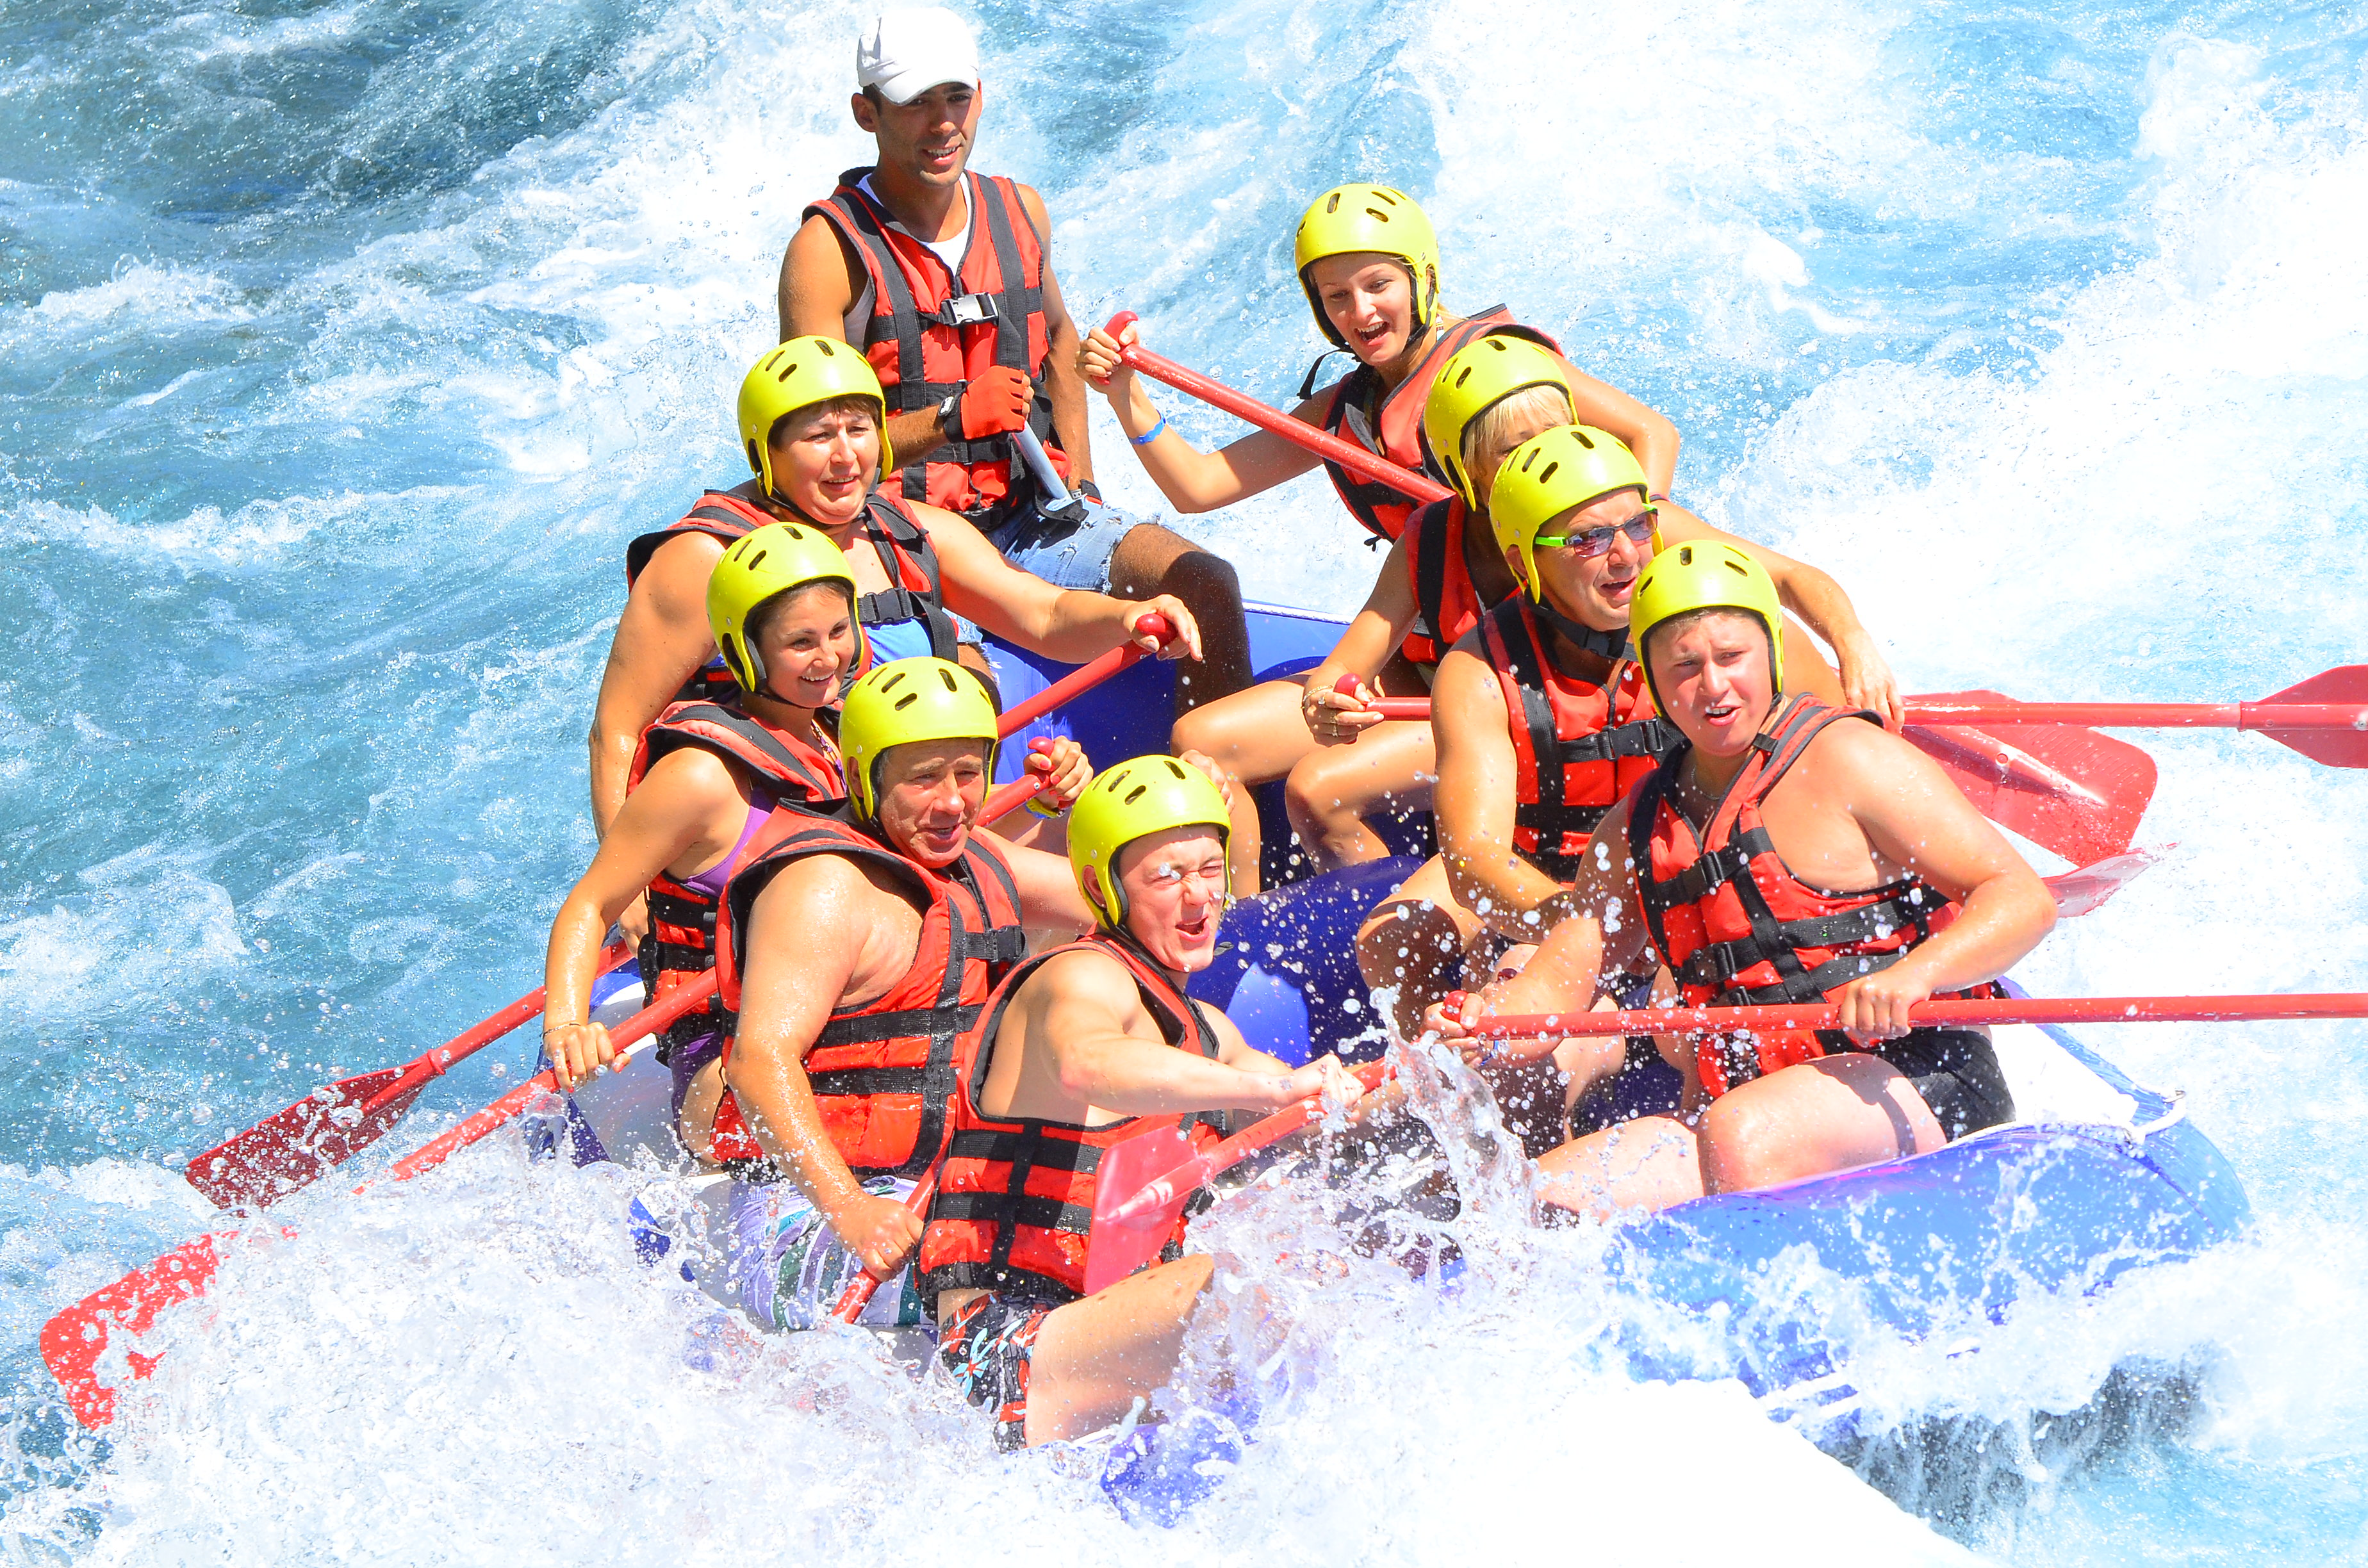 Koprulu canyon rafting Antalya